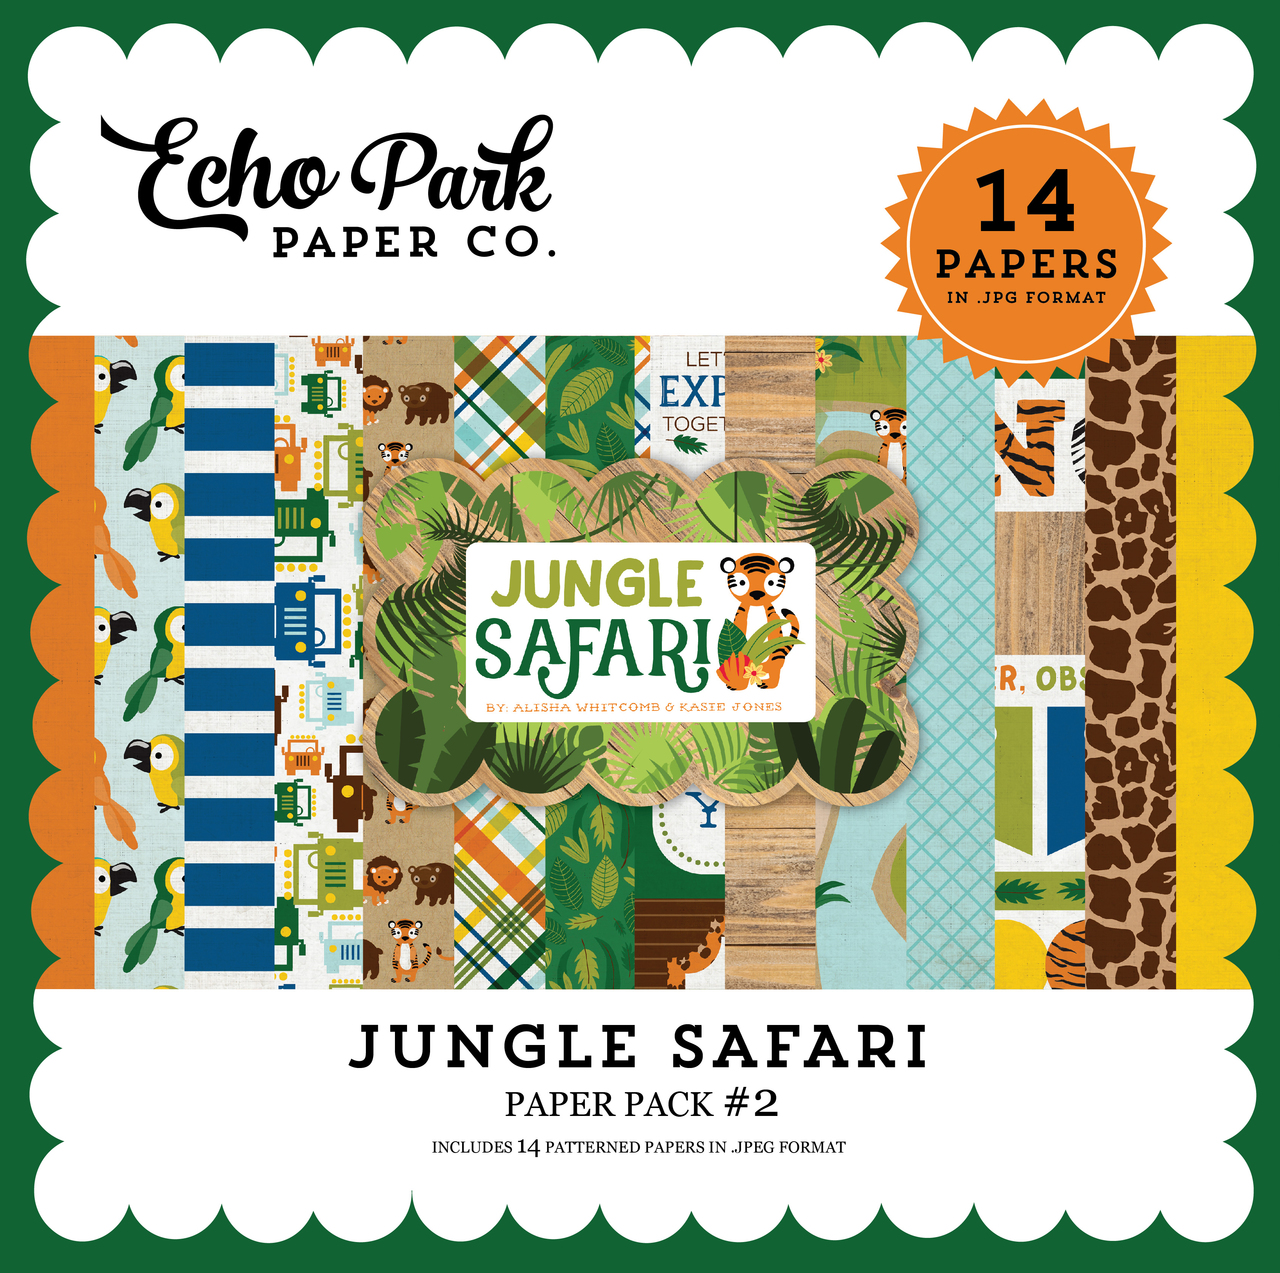 Jungle Safari Paper Pack #2